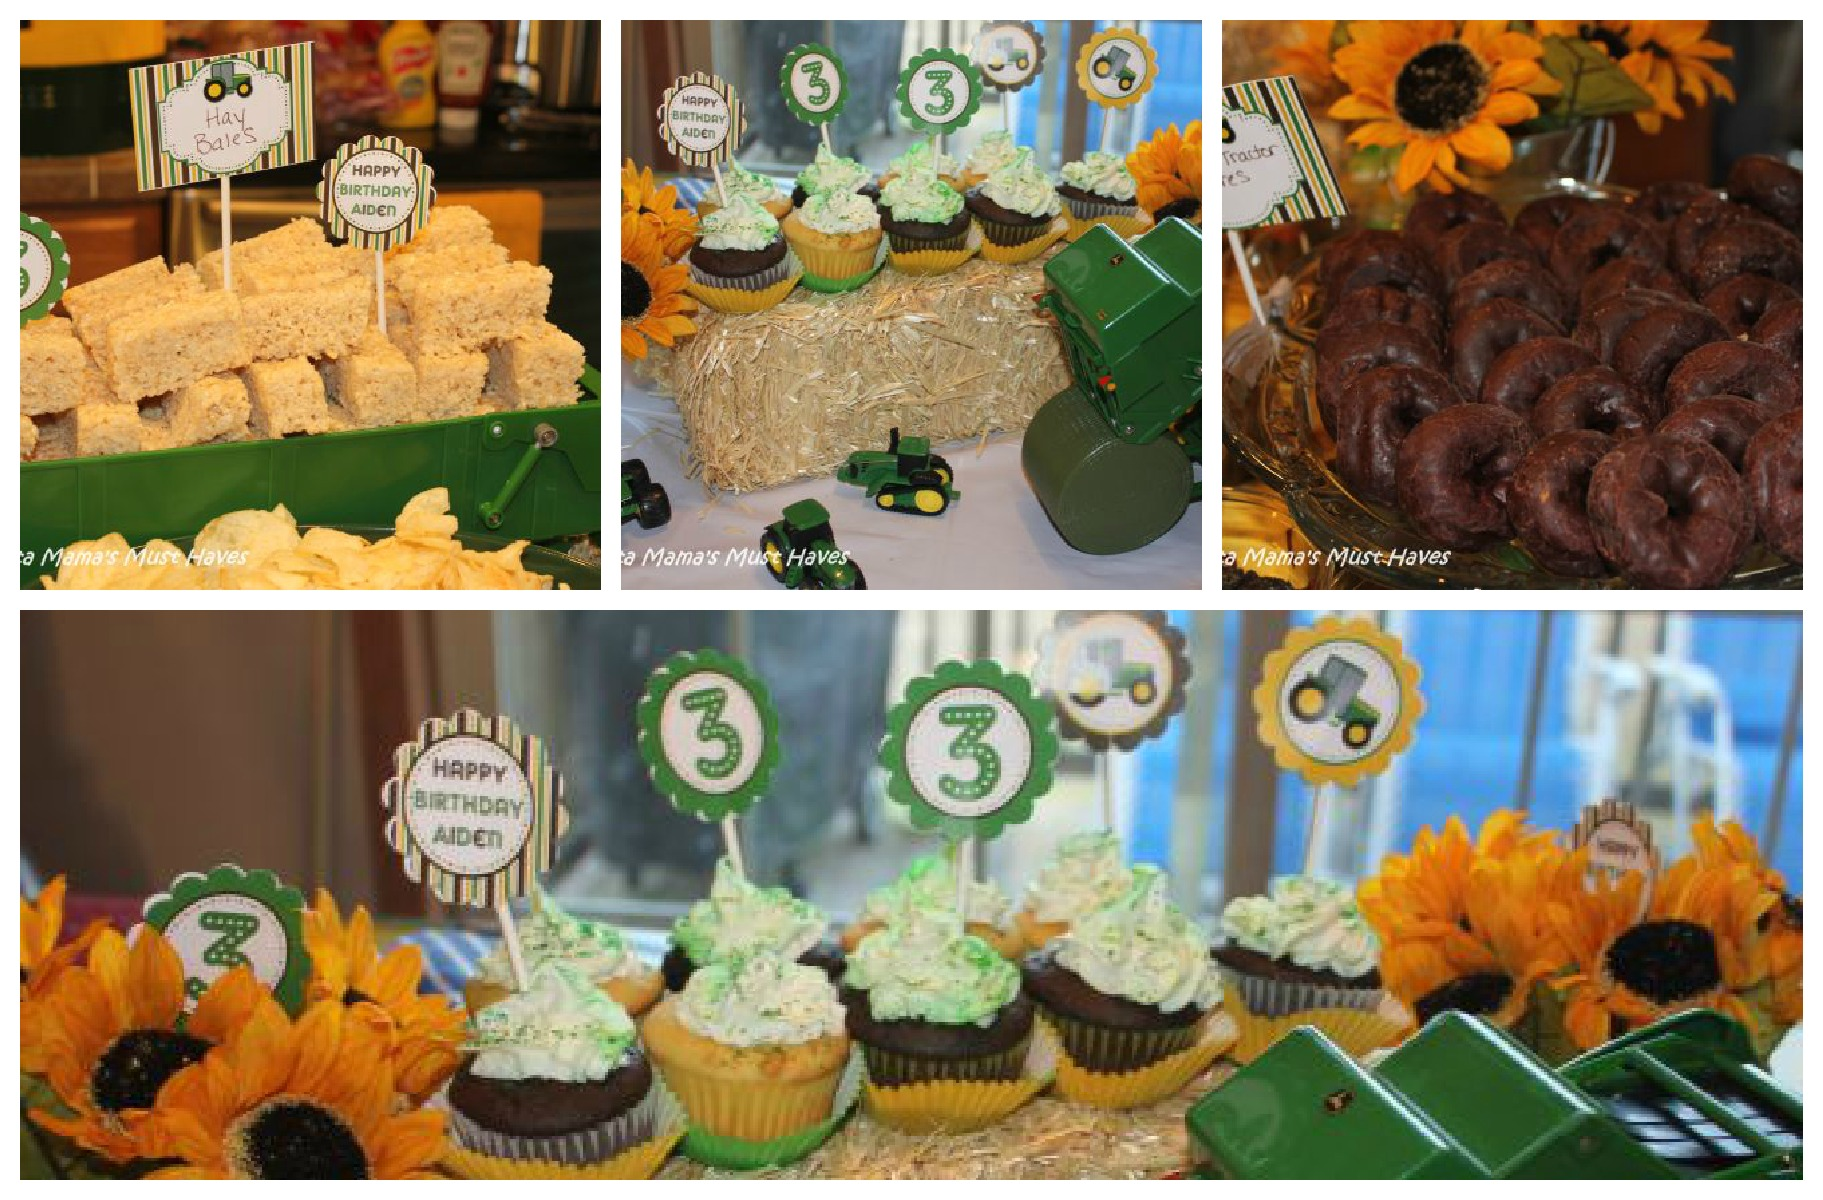 John Deere Tractor Birthday Party Food Games Favors & More